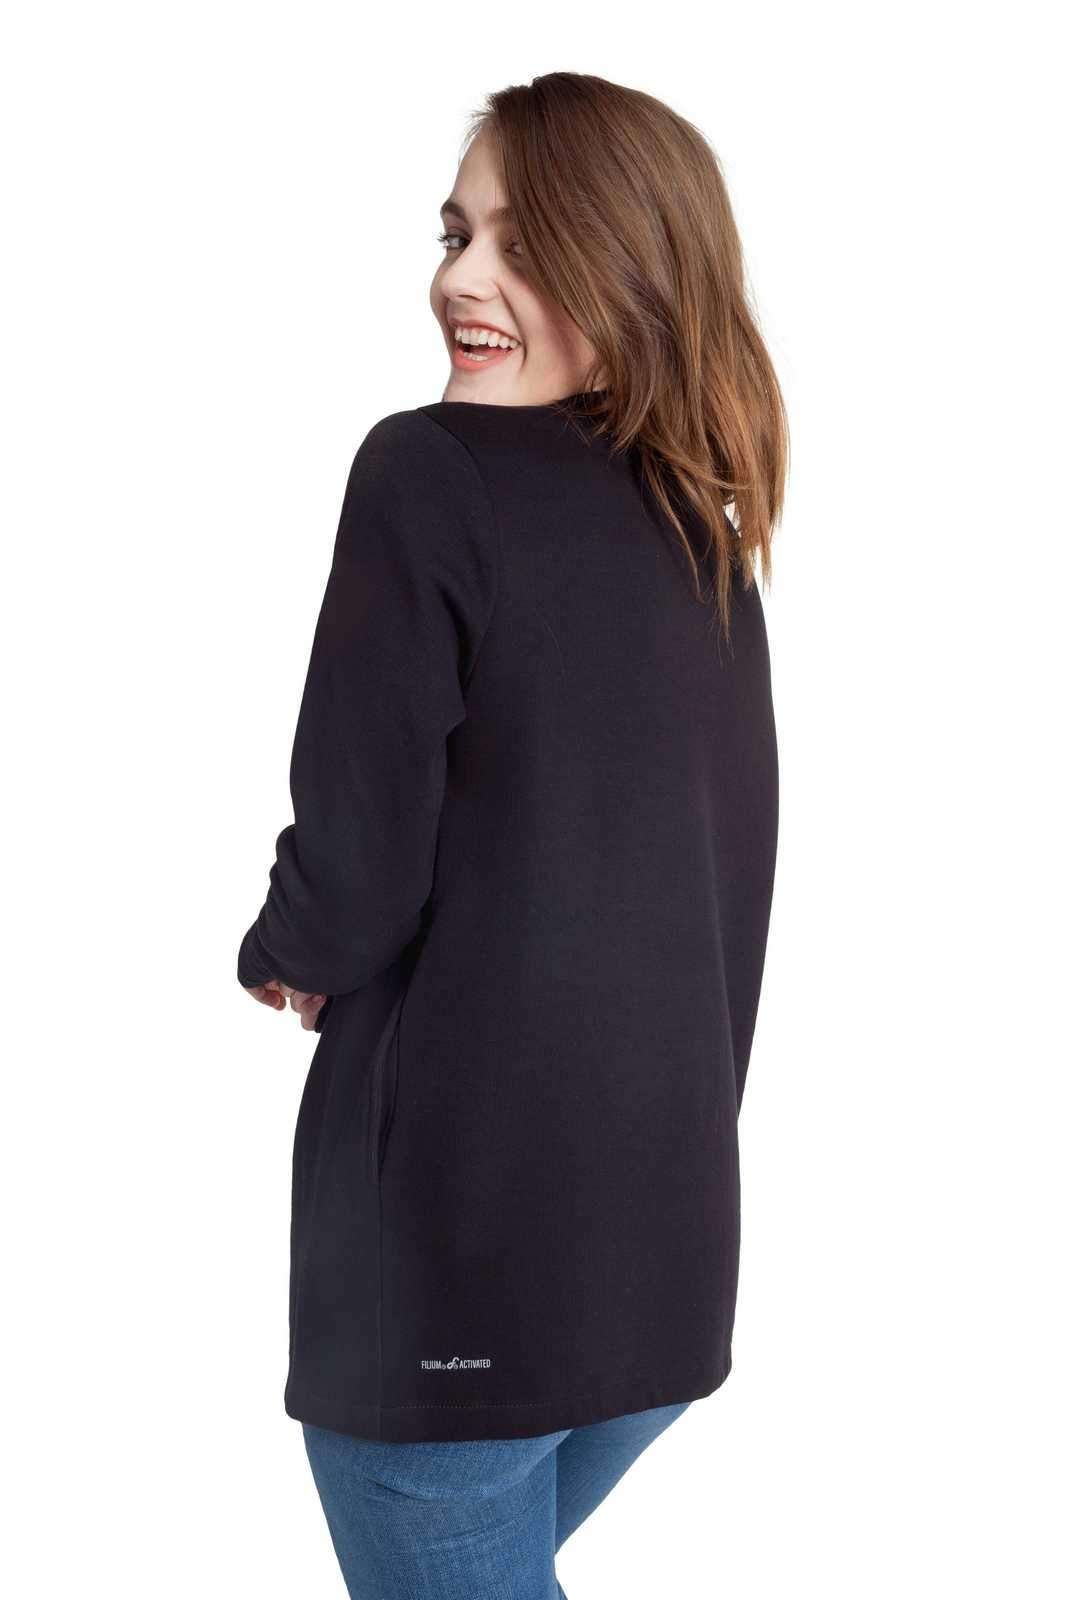 Ably Apparel Celeste Cardigan | repels liquids, Stains, and Odors by Ably Apparel (Image #2)